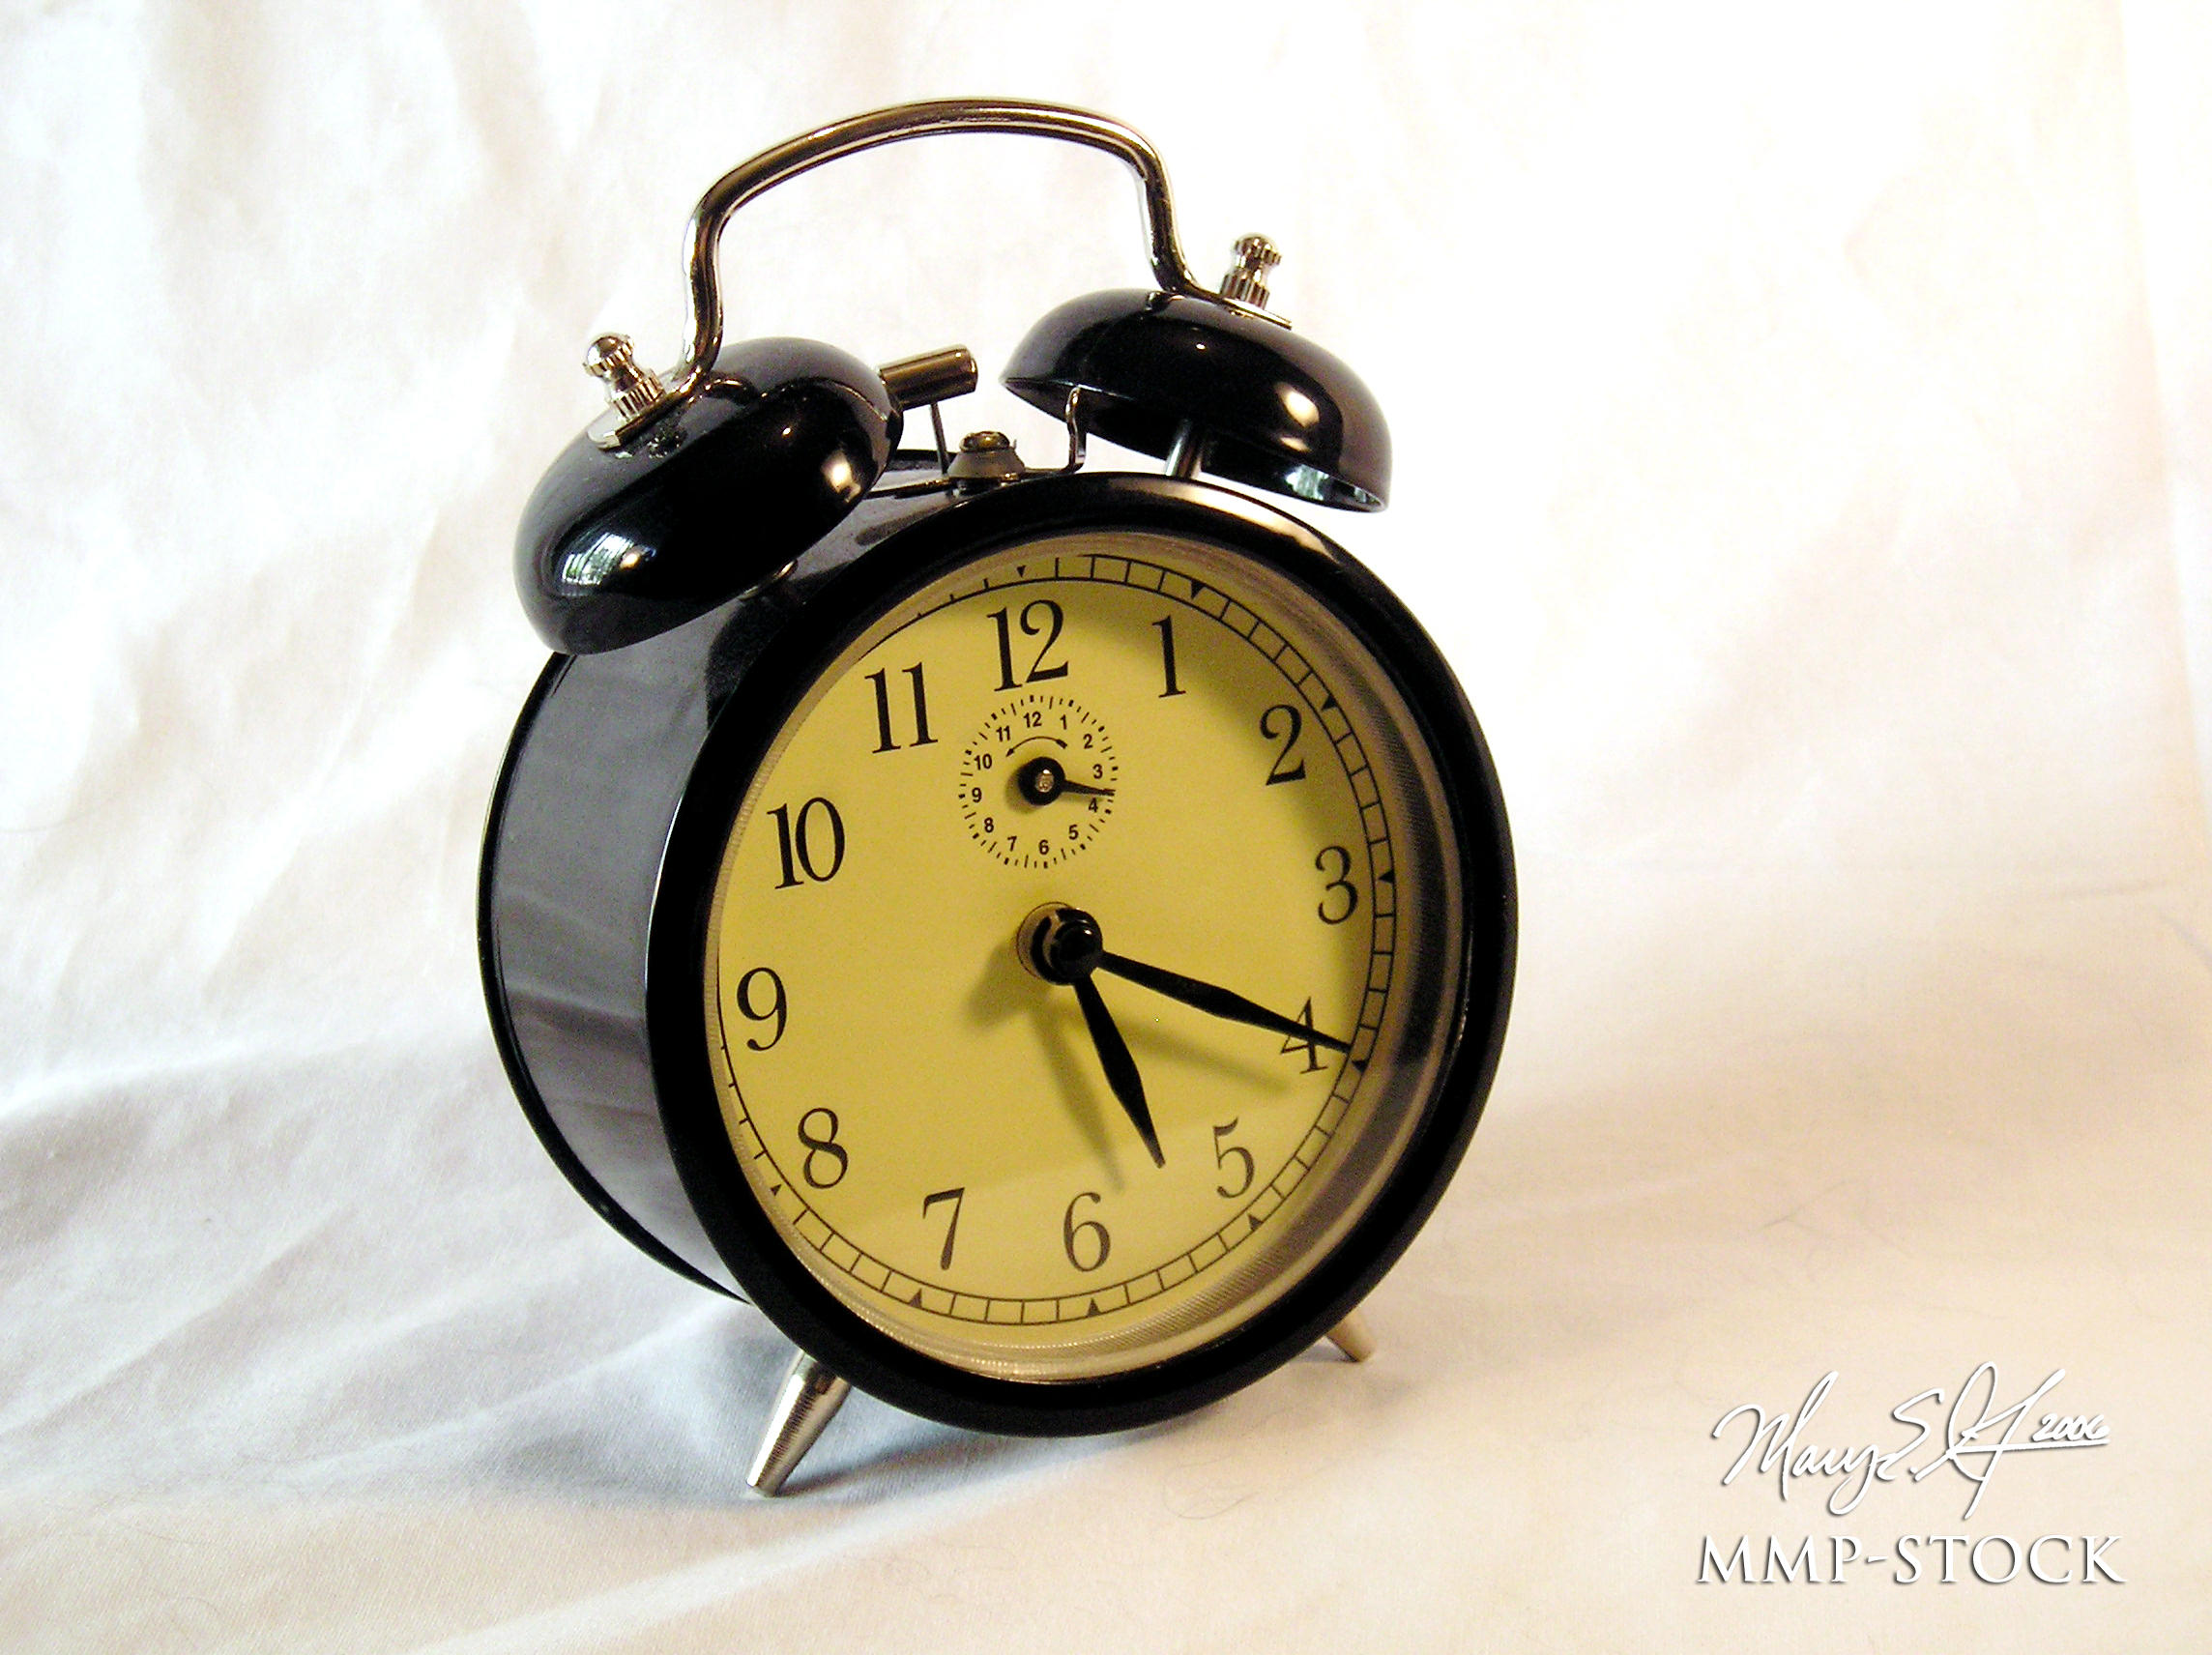 FREE STOCK, Clock 2 by mmp-stock